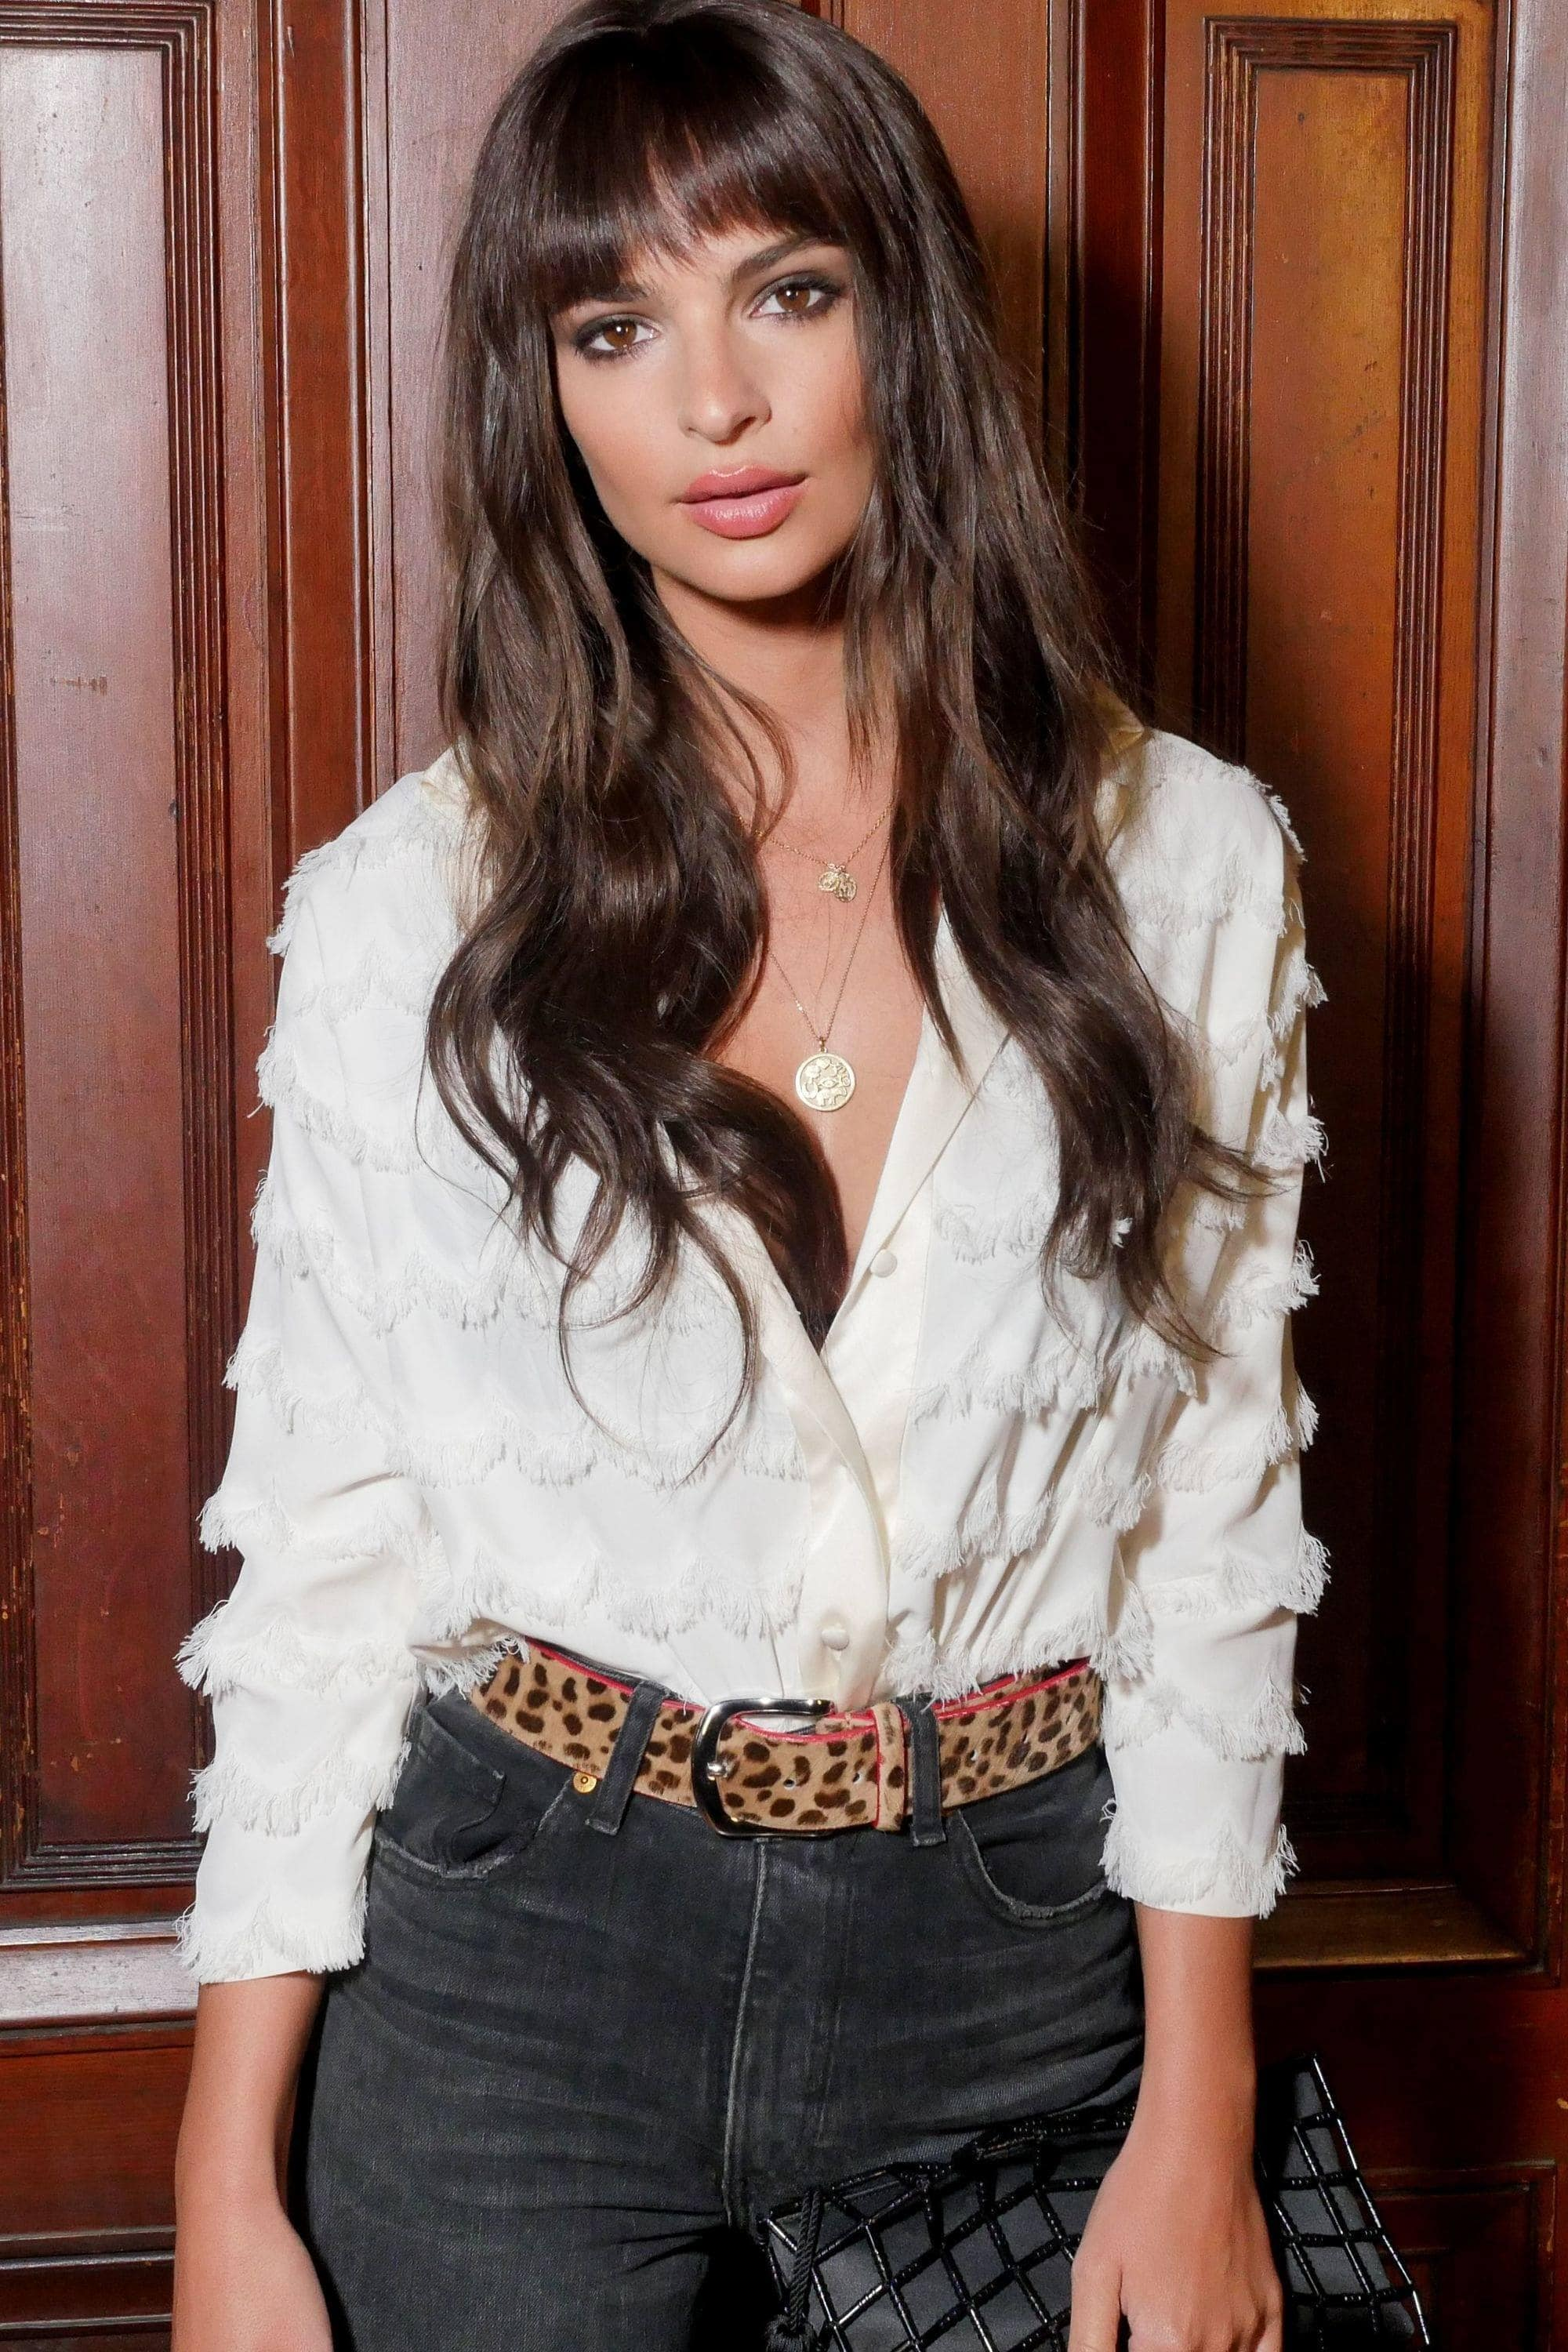 close up shot of emily ratajkowski with long brown hair with feather bangs, wearing blouse and jeans